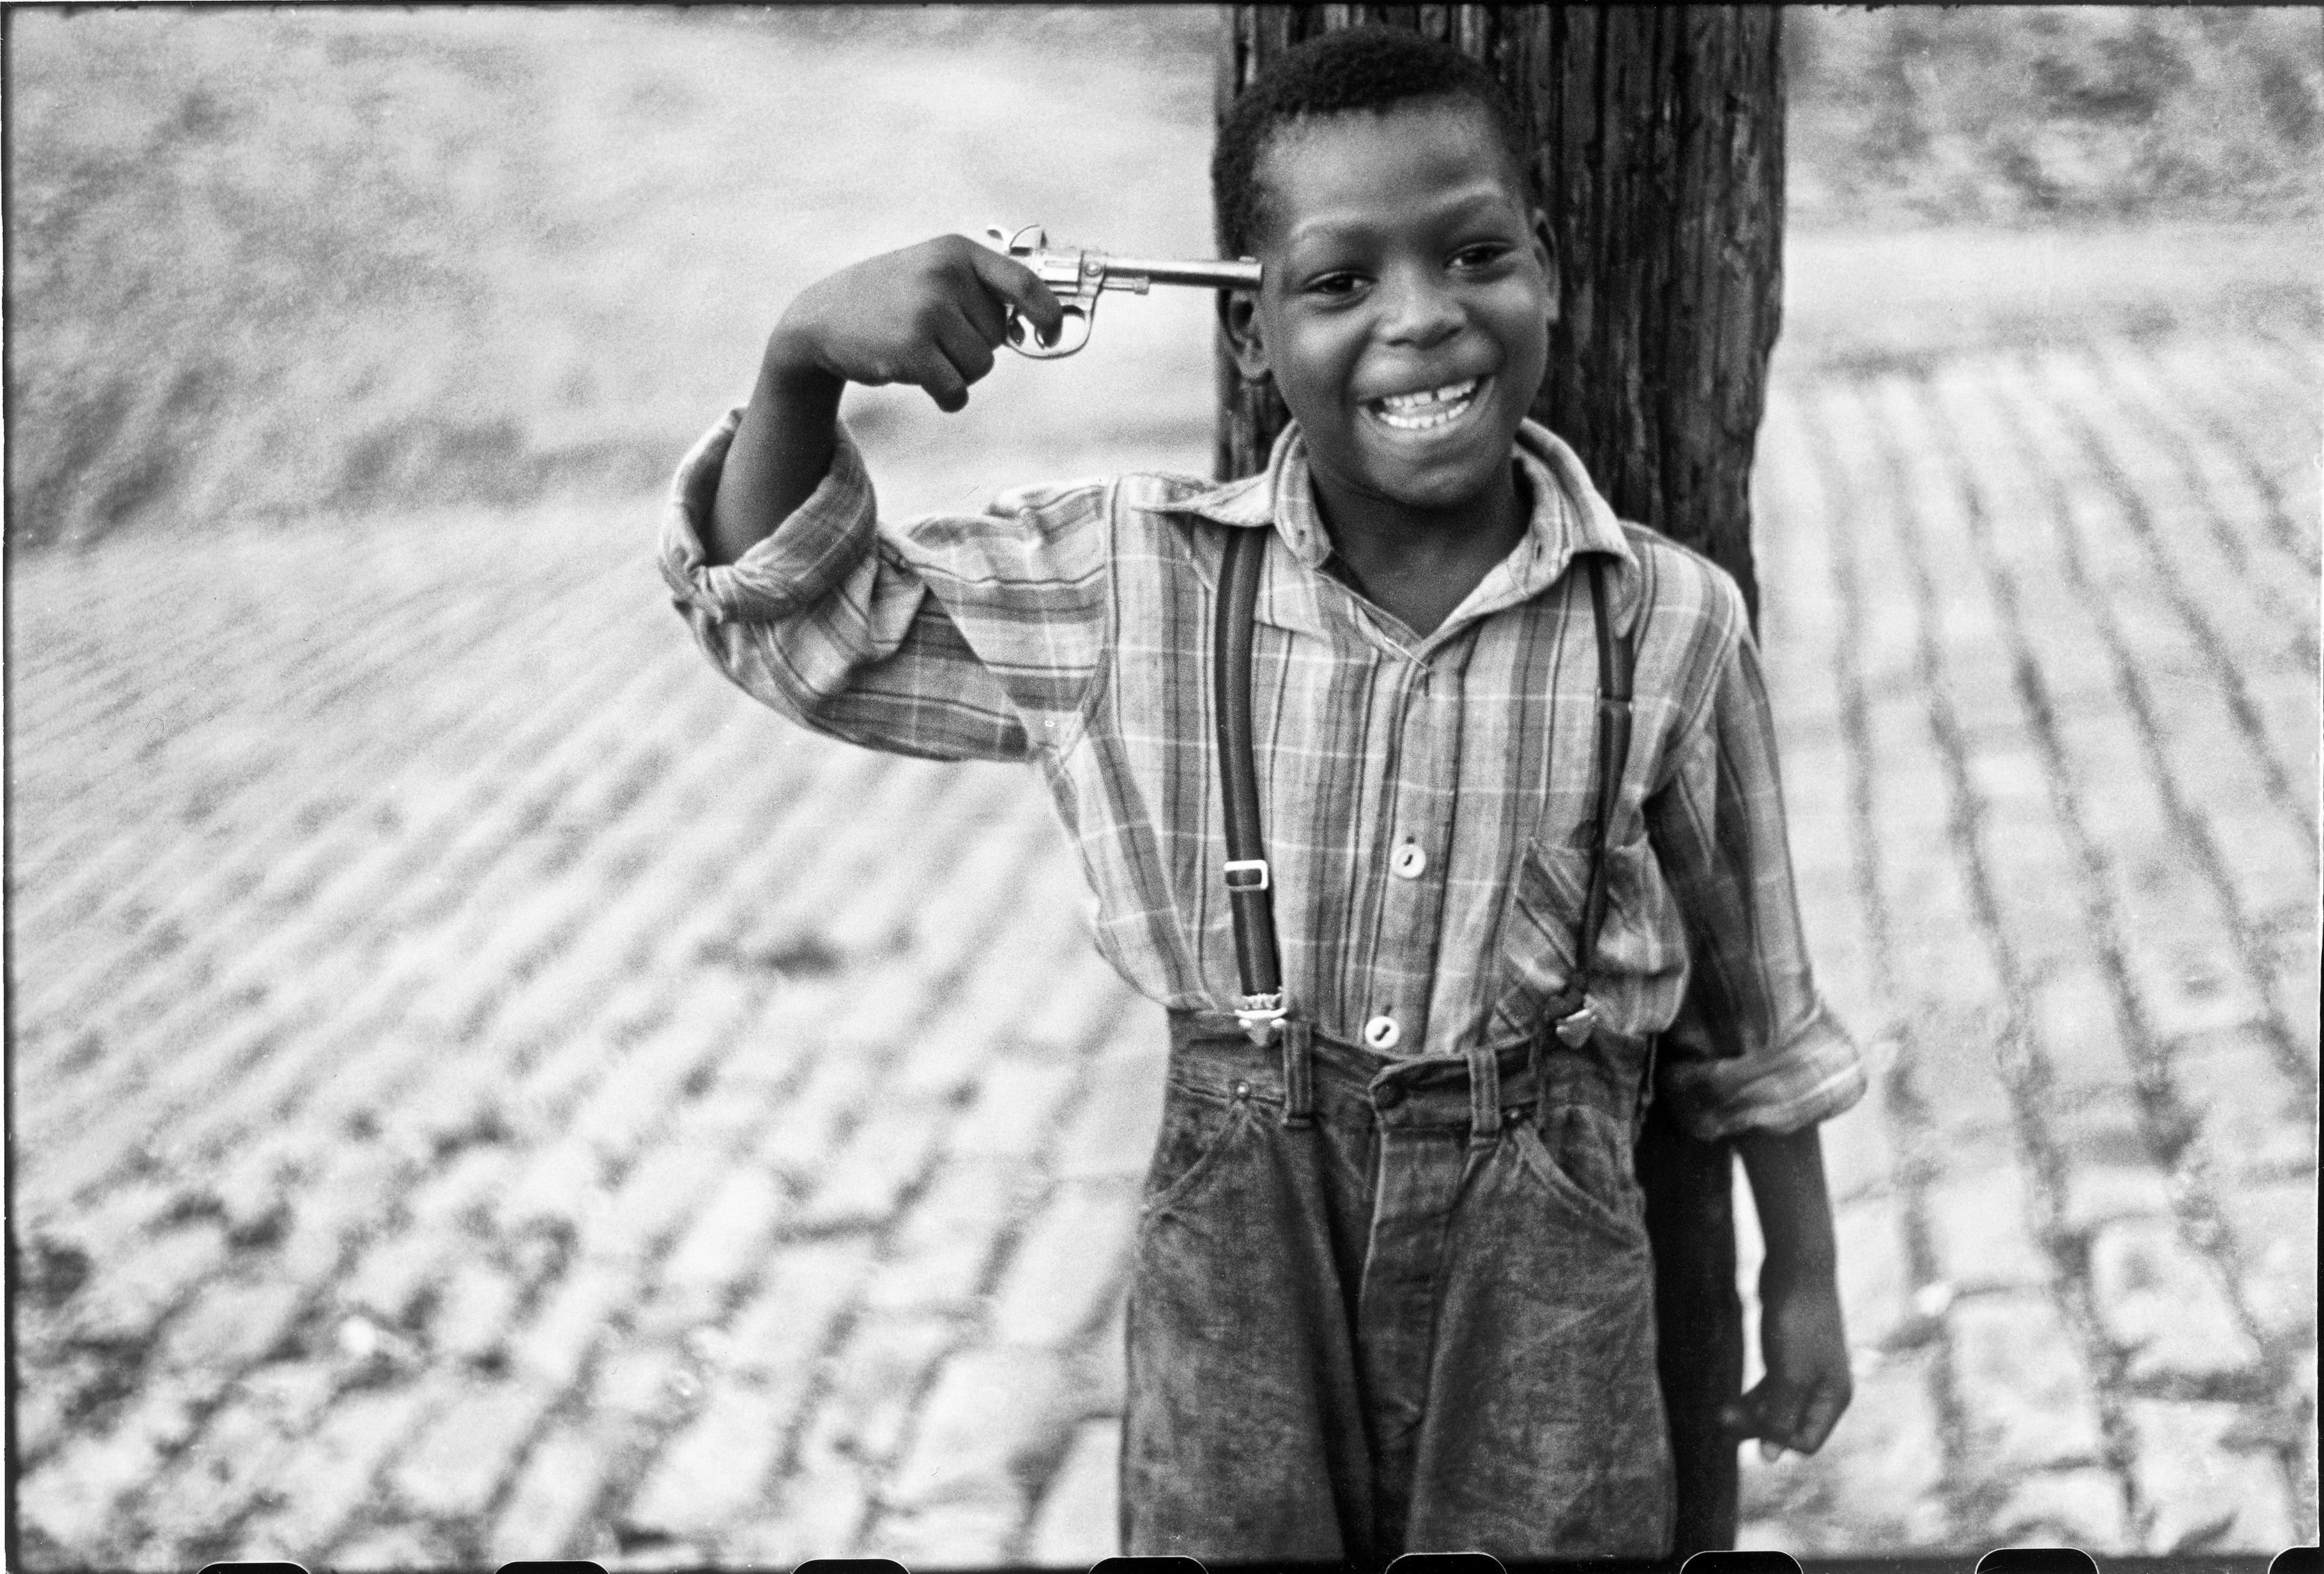 Children on Beelen Street, Pittsburgh 1950 © Elliott Erwitt / Magnum Photos